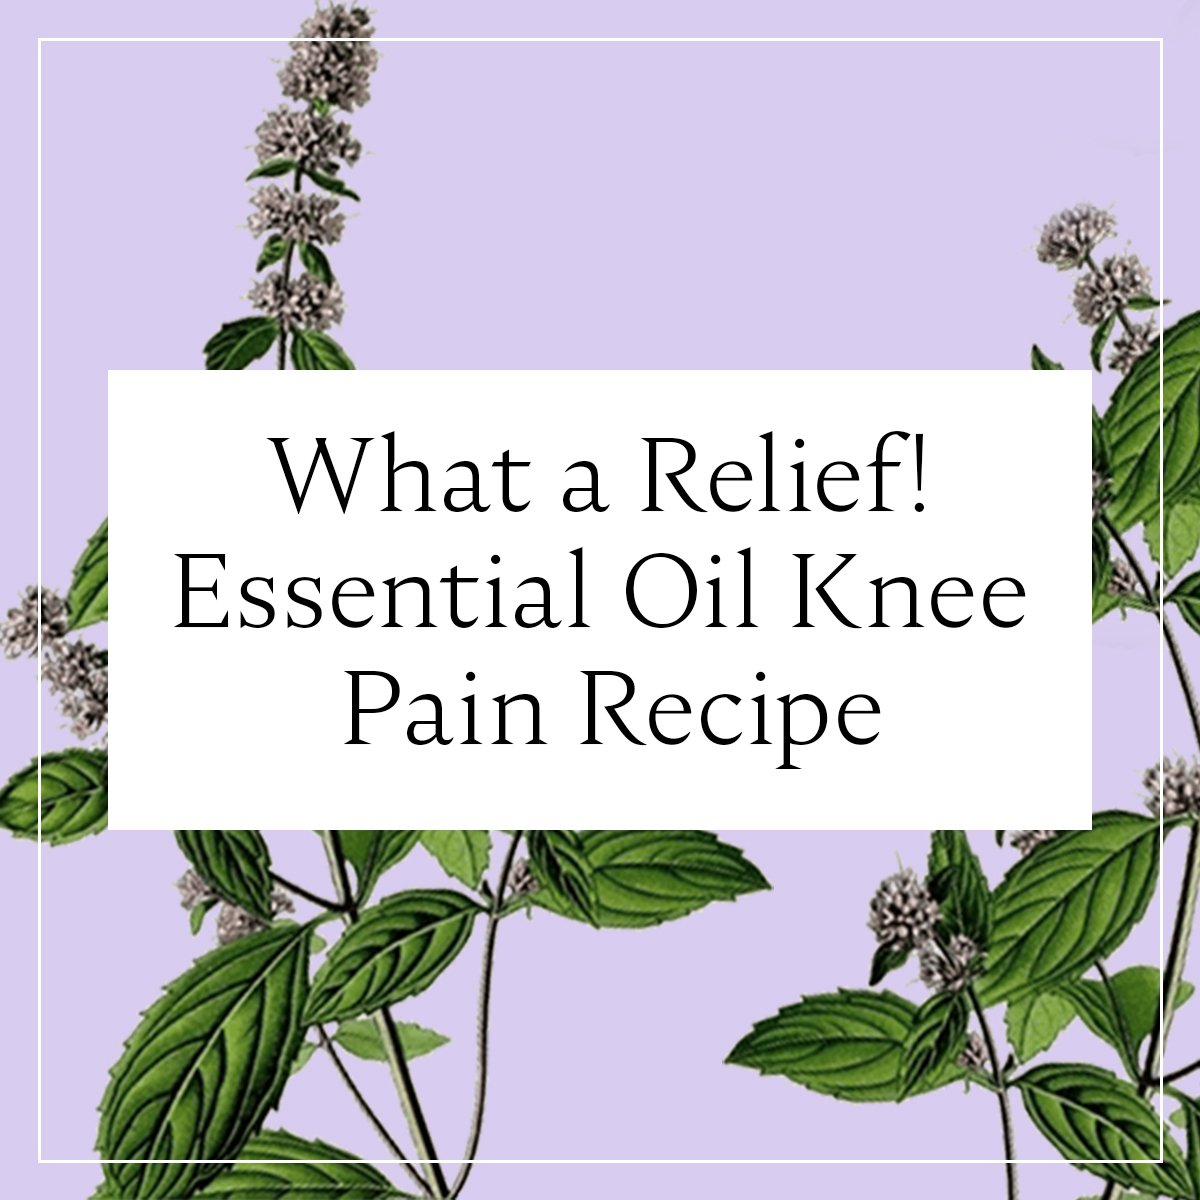 What a Relief! A Natural Essential Oil Knee Pain Recipe